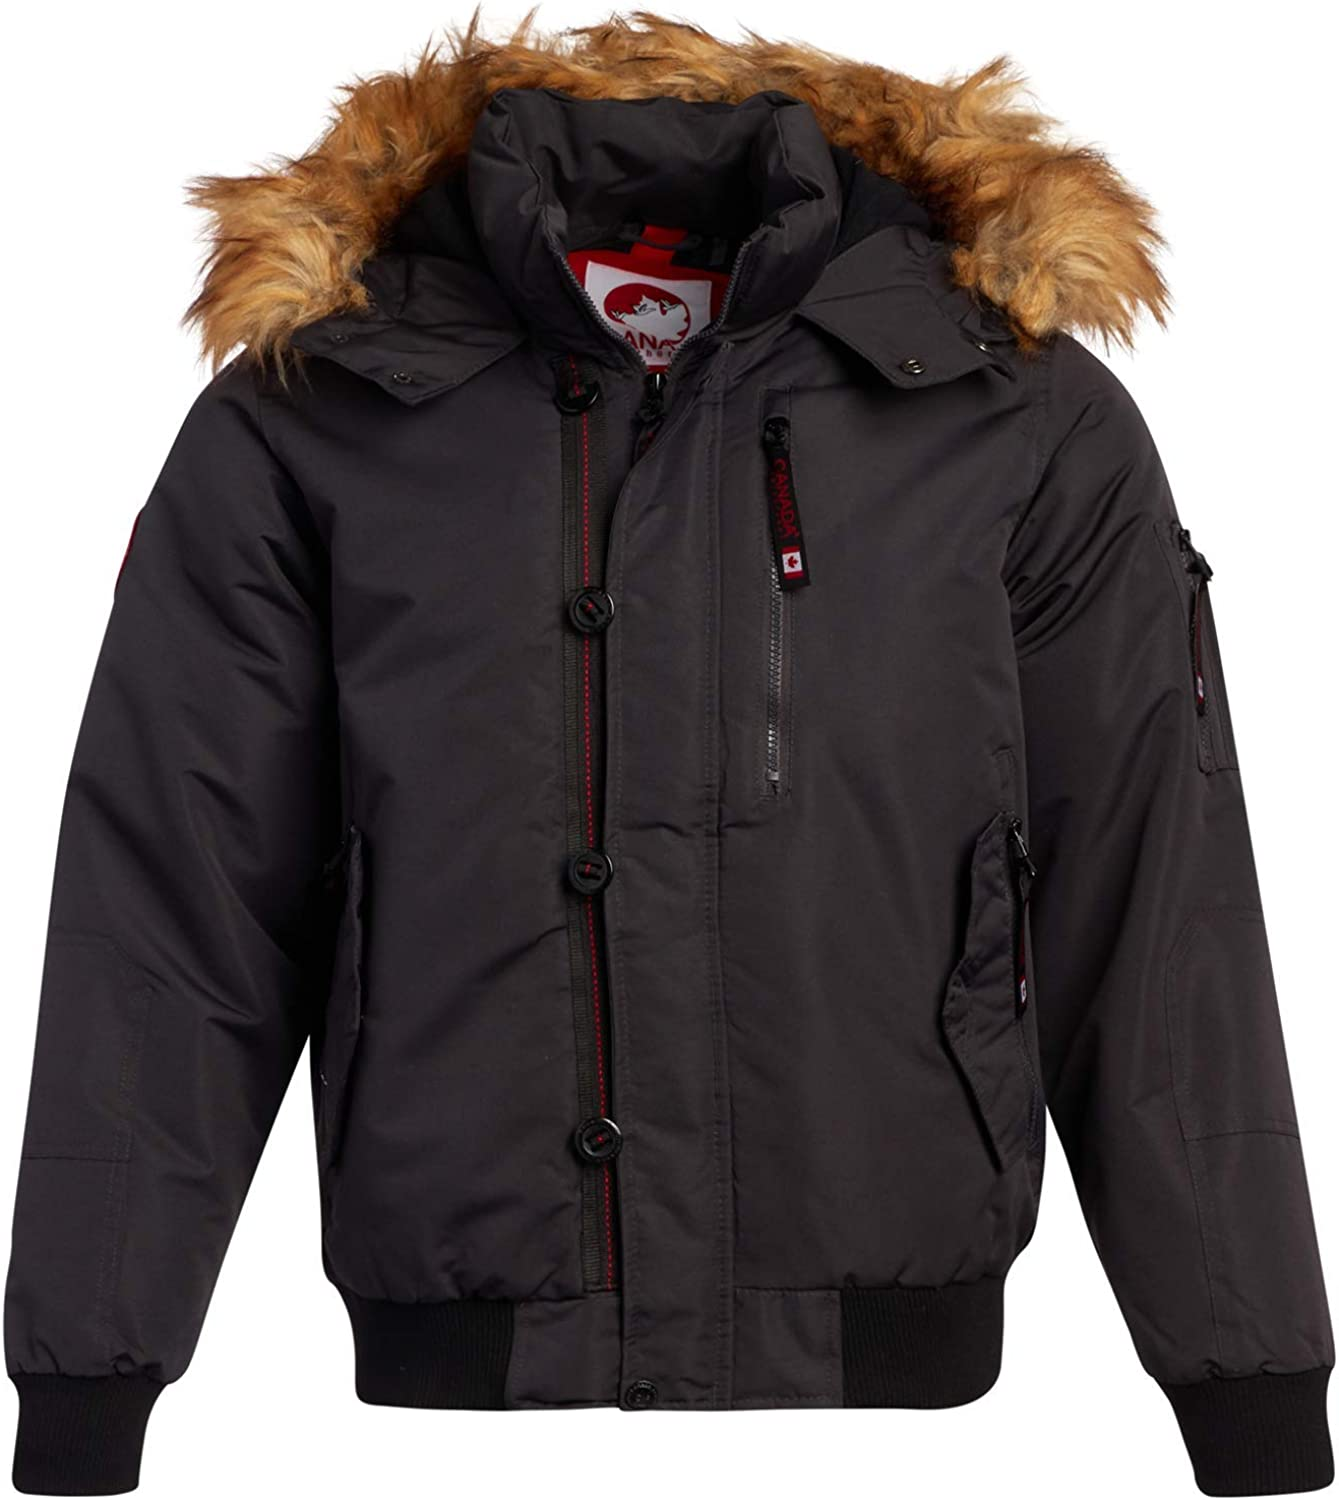 CANADA WEATHER GEAR Mens Winter Coats - Heavyweight Bomber Parka Jacket with Faux Fur Hood